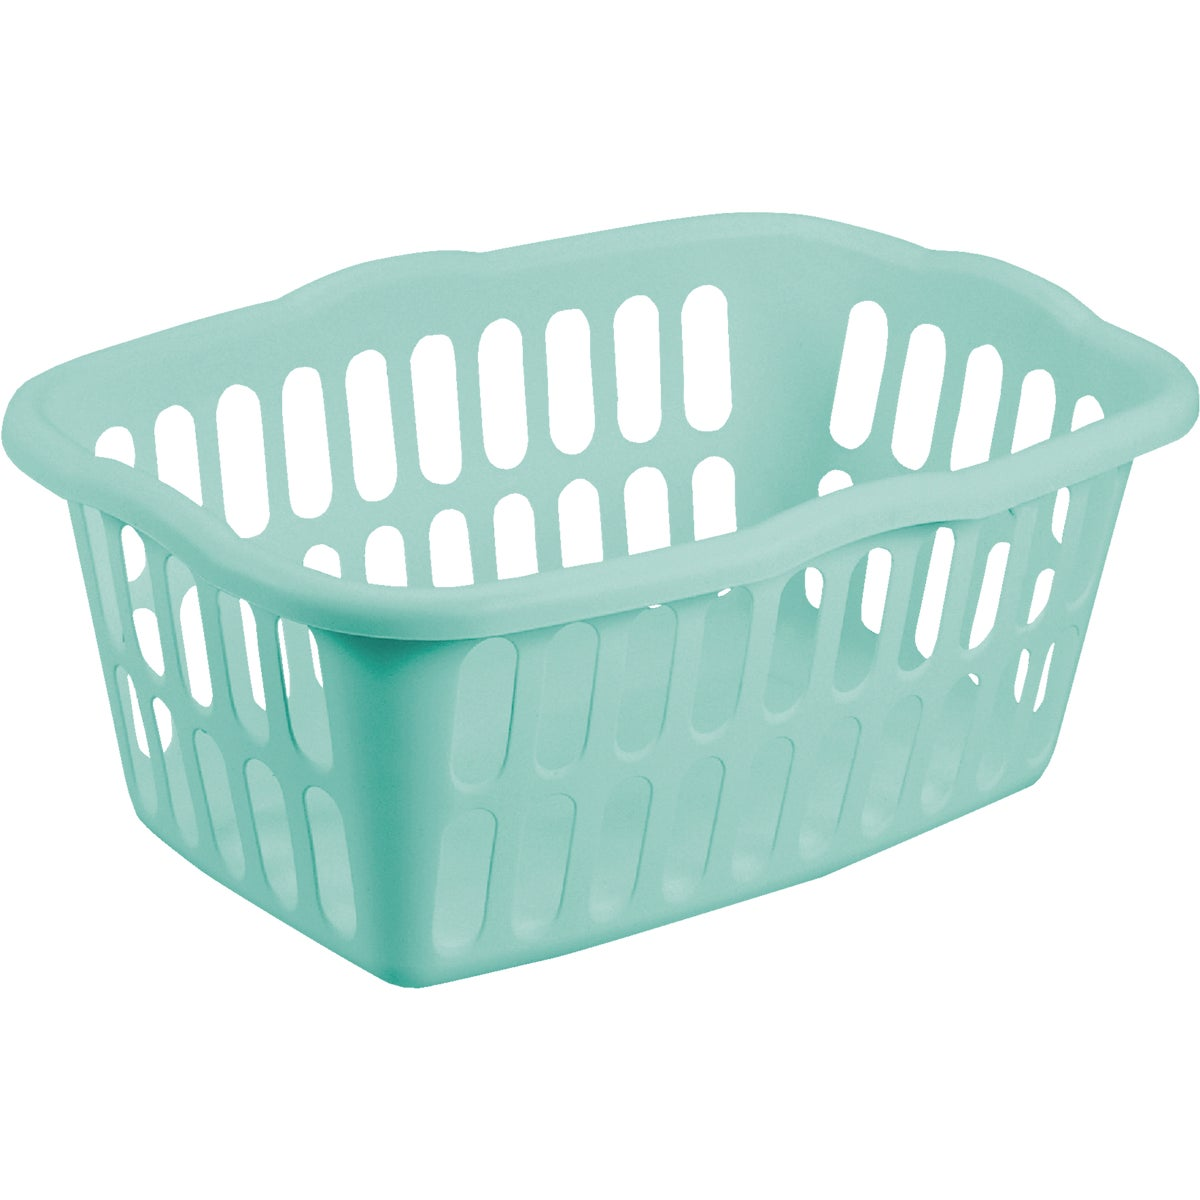 1.5 BU LAUNDRY BASKET - 12459412 by Sterilite Corp